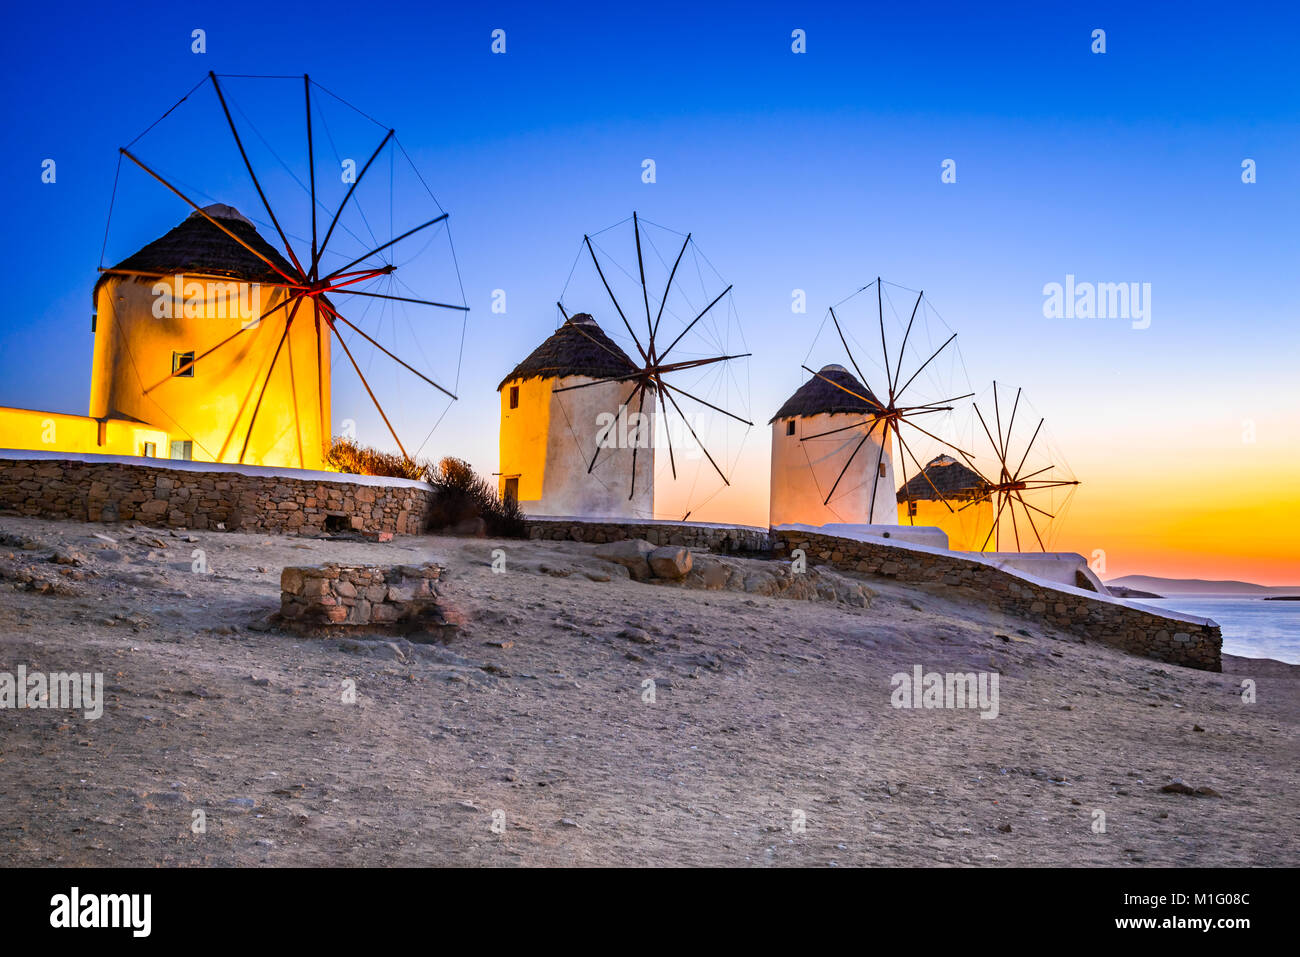 Mykonos, Greece. Kato Mili are iconic windmill of the Greek island of the Mikonos, Cyclades Islands. - Stock Image